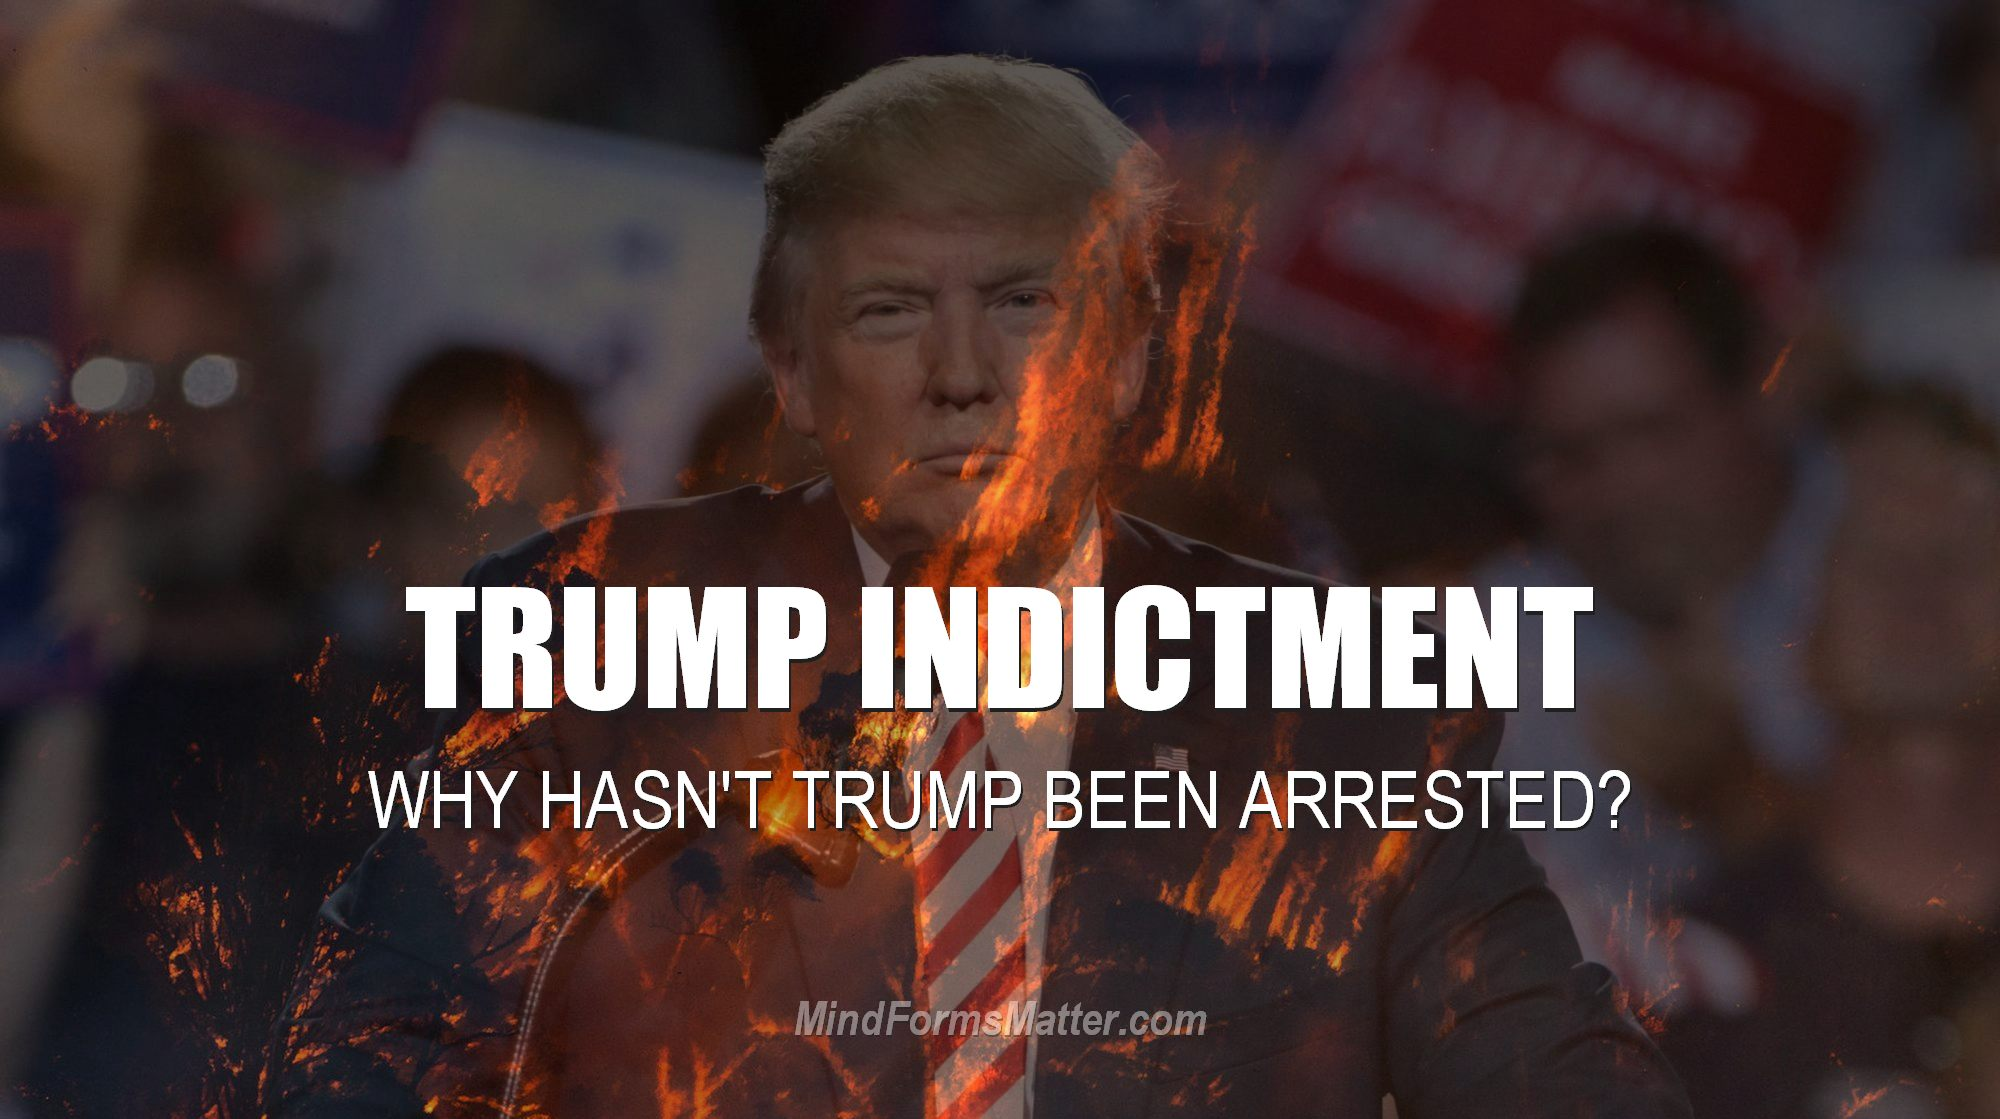 Why hasn't Trump been subpoenaed, indicted, arrested and sent to jail or prison?